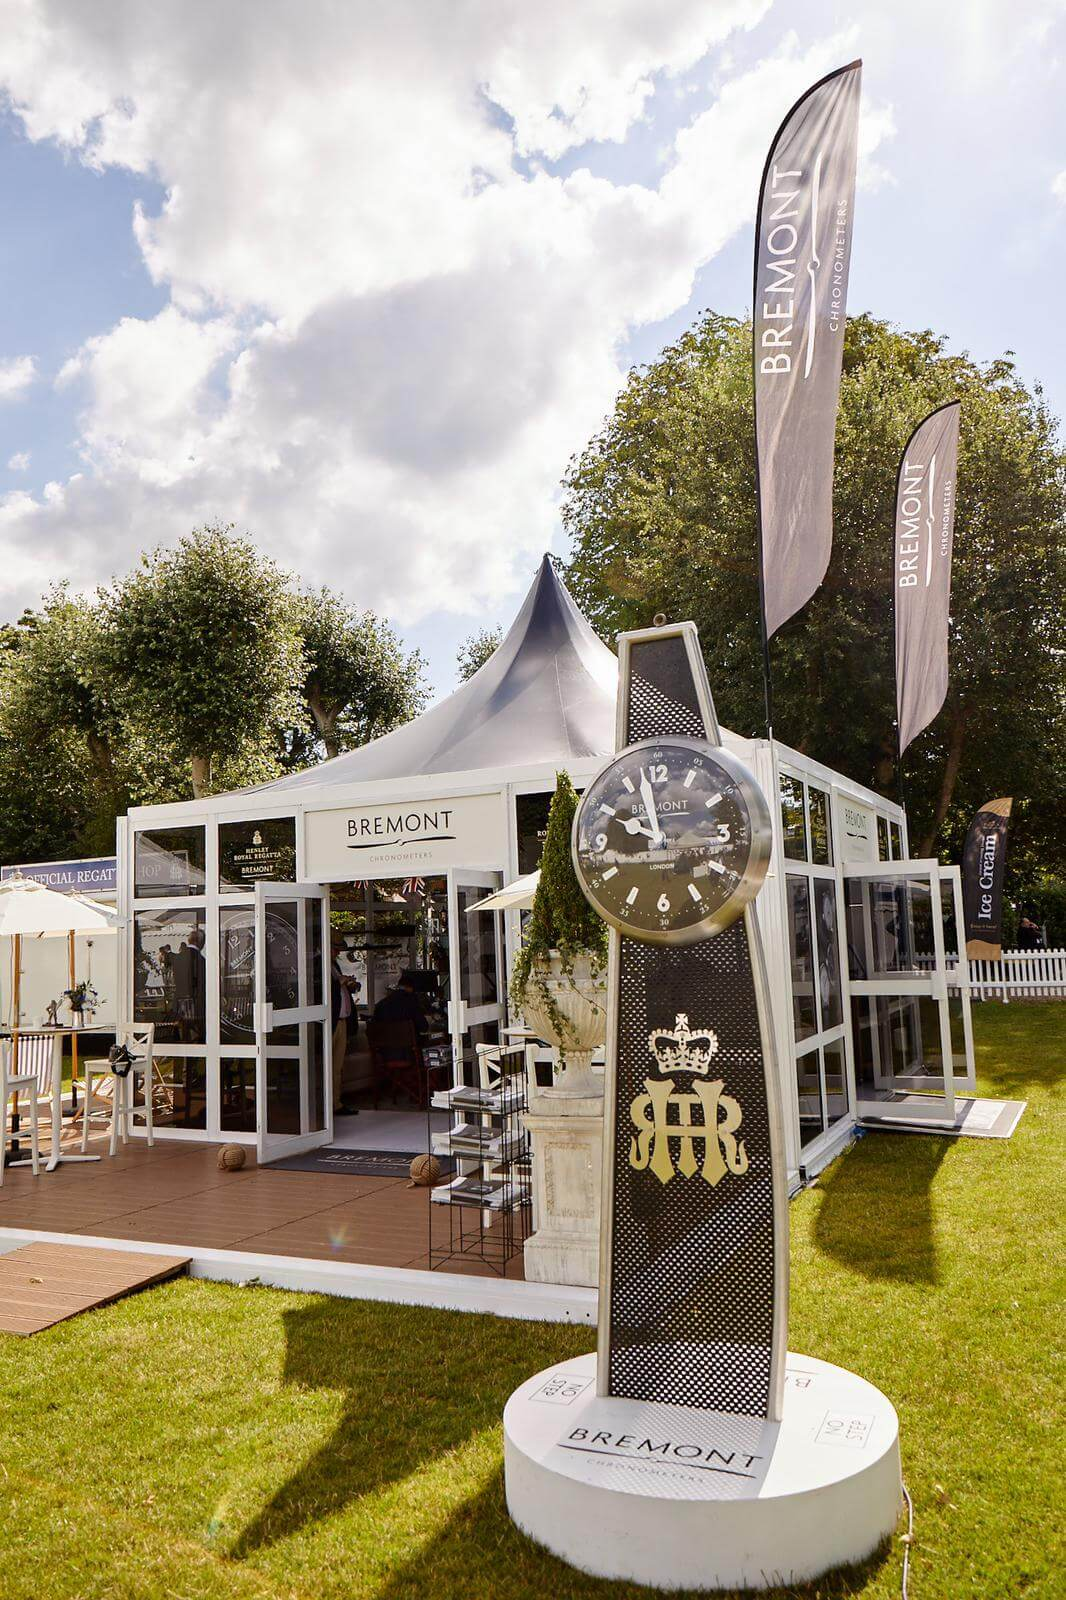 bremont watches henley 2019 - Exhibition Stands